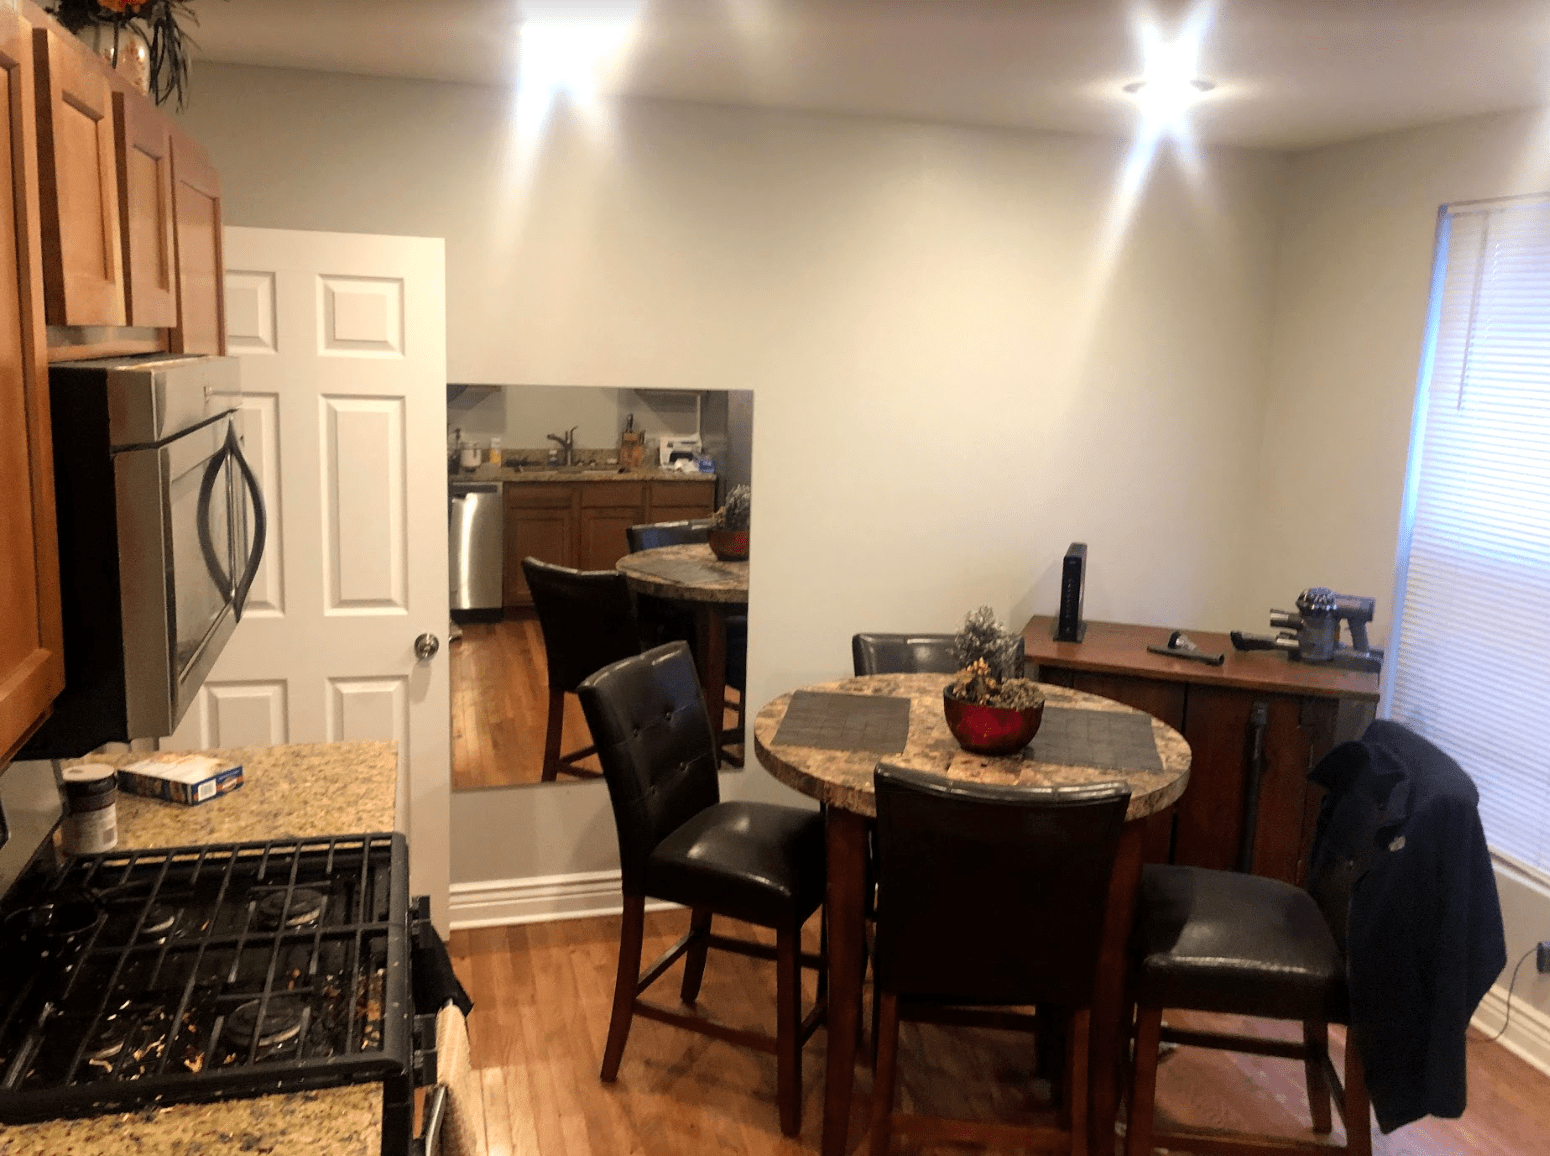 Off Market Townhouse in Uptown - Property Plug